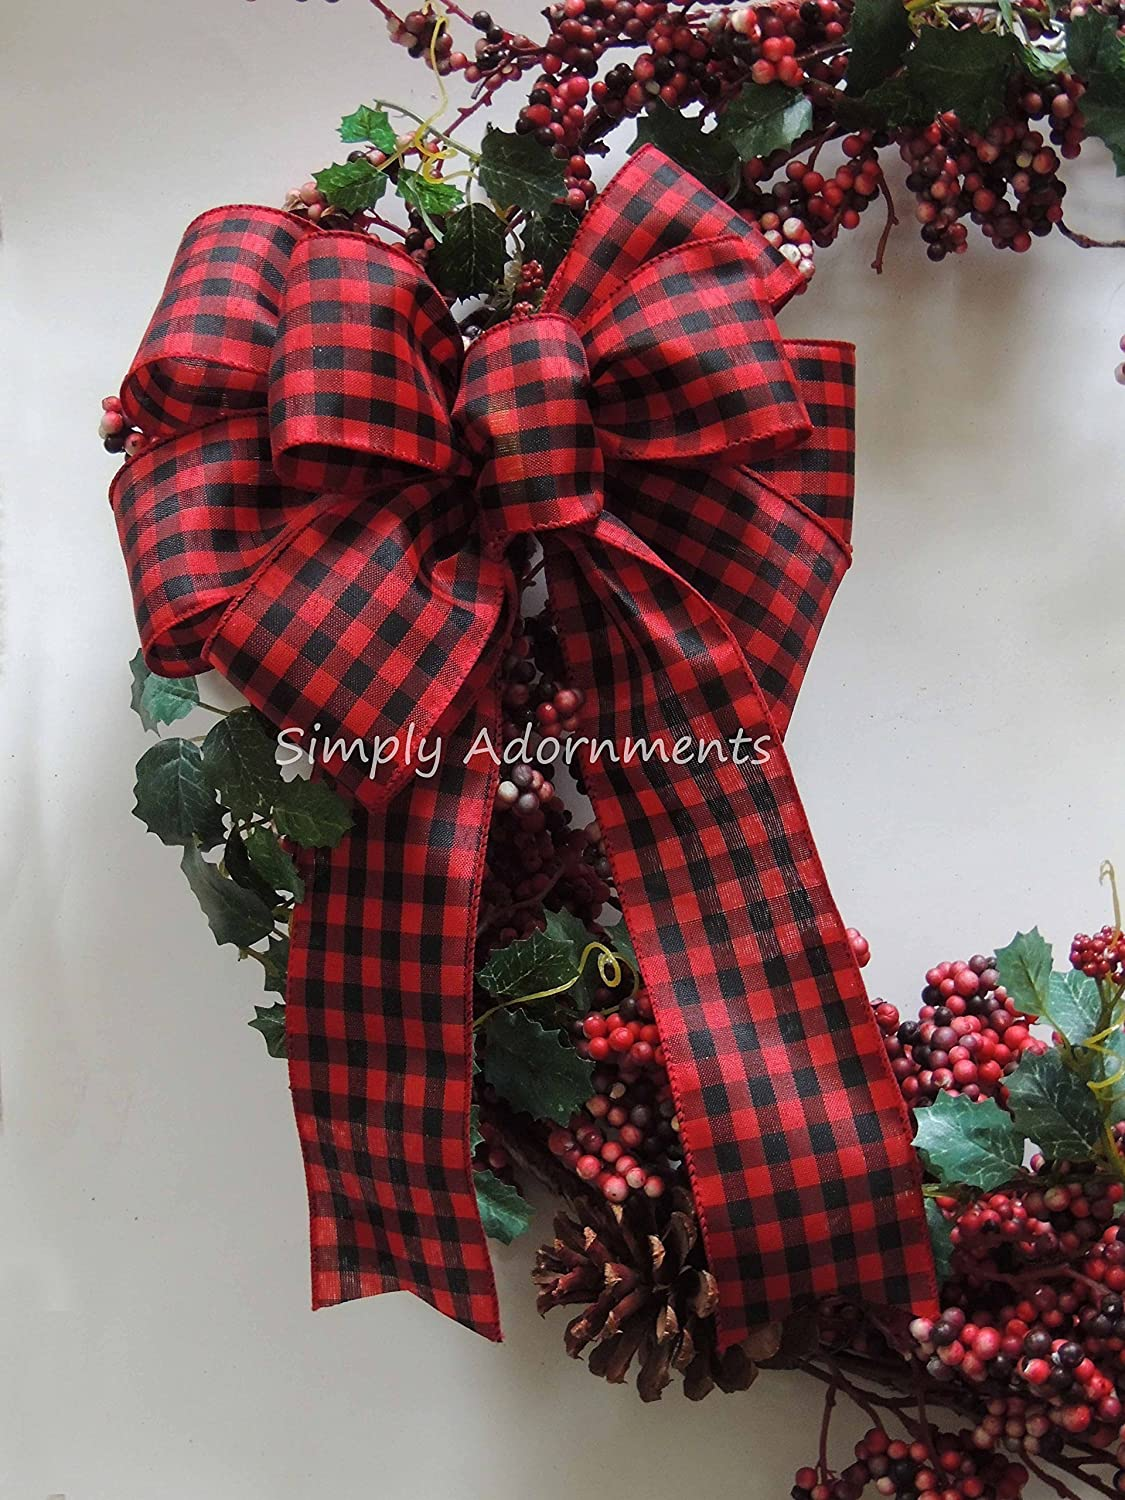 Buffalo Check Christmas Wreath.Red Black Check Bow Rustic Cabin Plaid Wreath Bow Red Black Buffalo Plaid Bow Country Plaid Wedding Bow Cabin Christmas Tree Bow